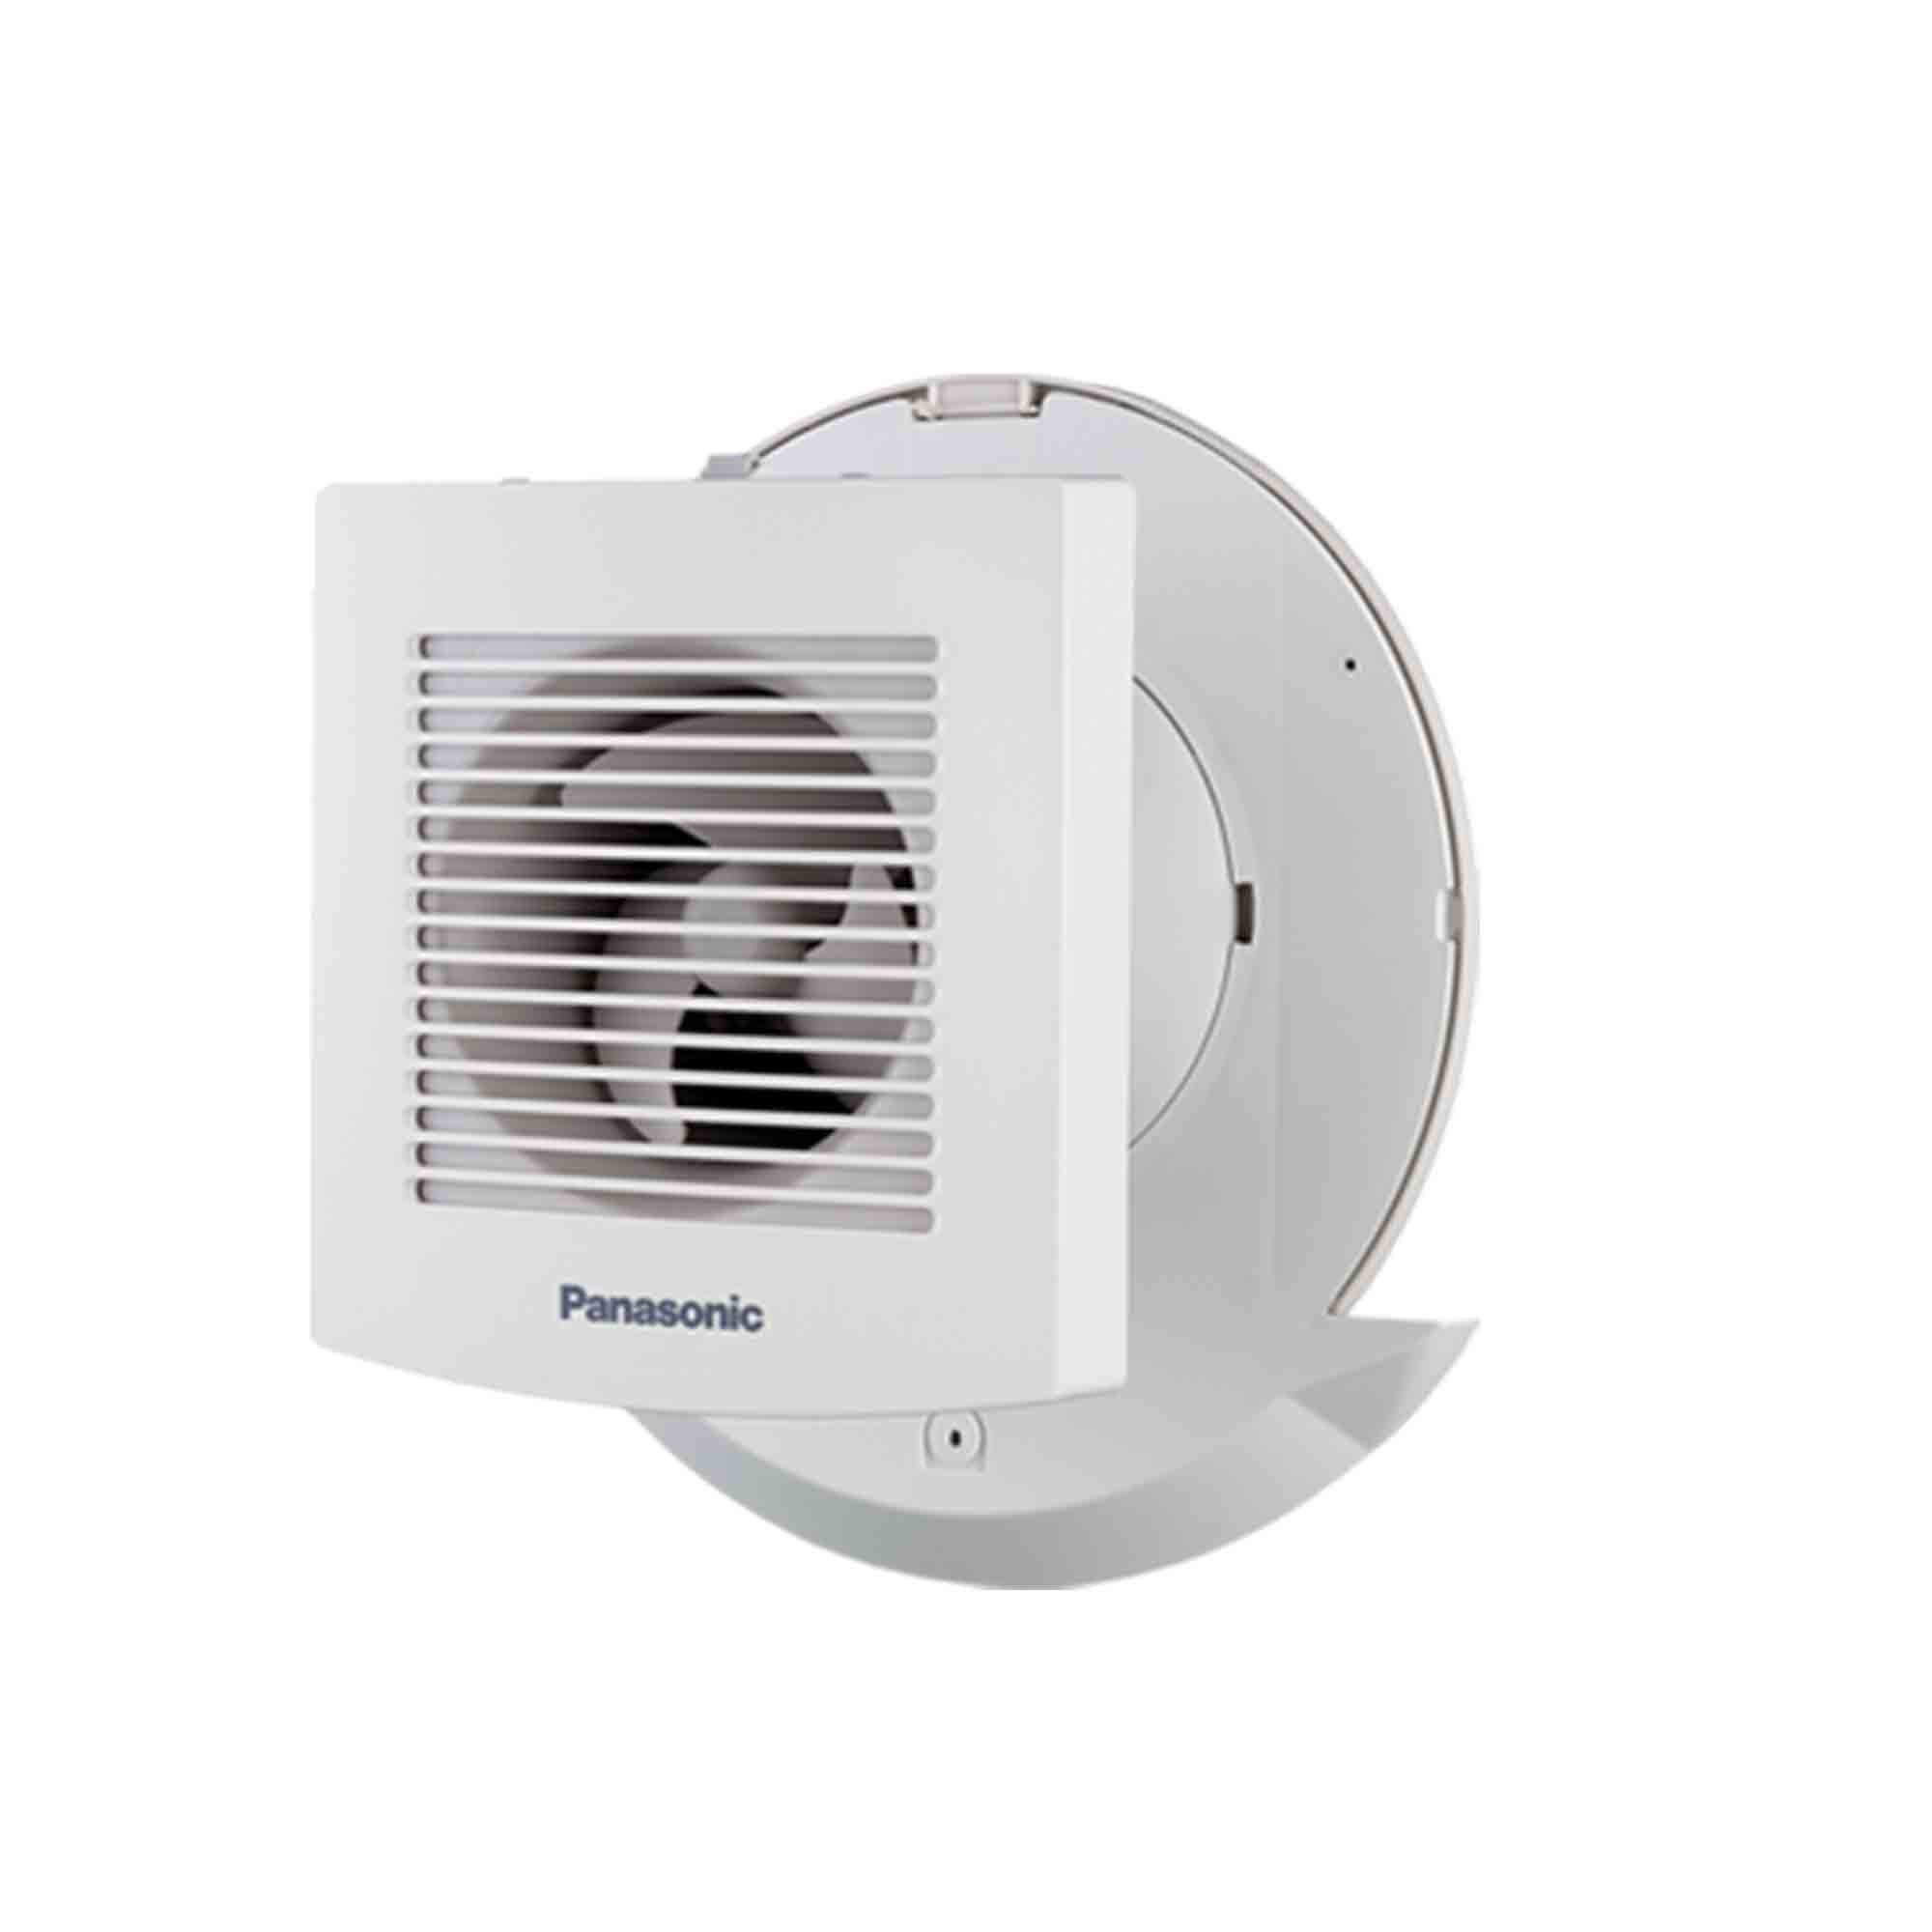 panasonic exhaust fan in some home tips panasonic vent fans